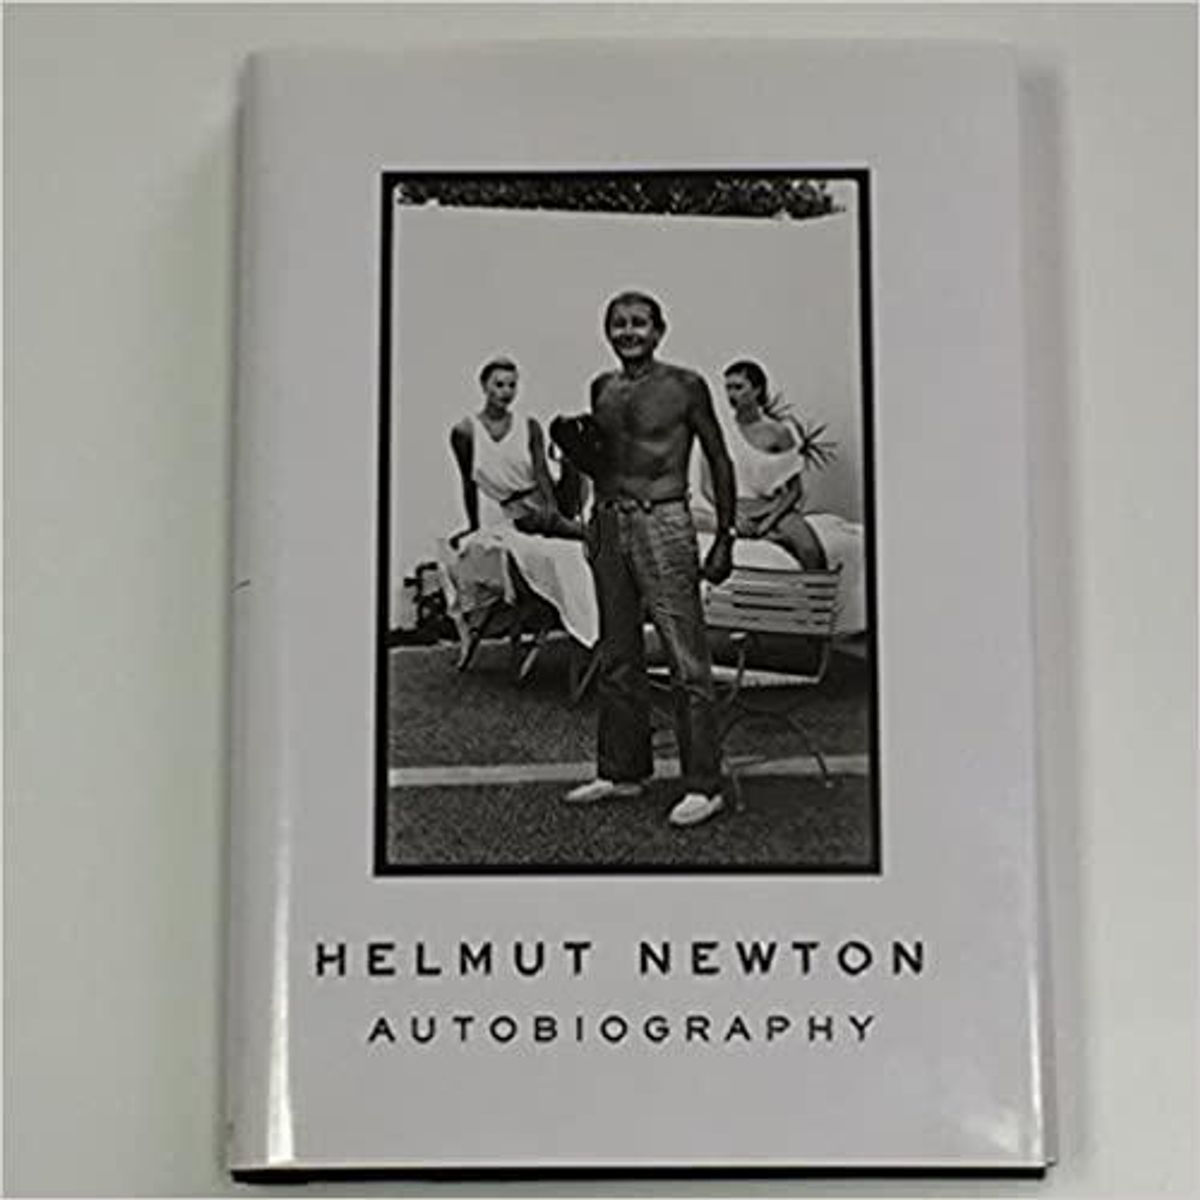 By Helmut Newton Autobiography